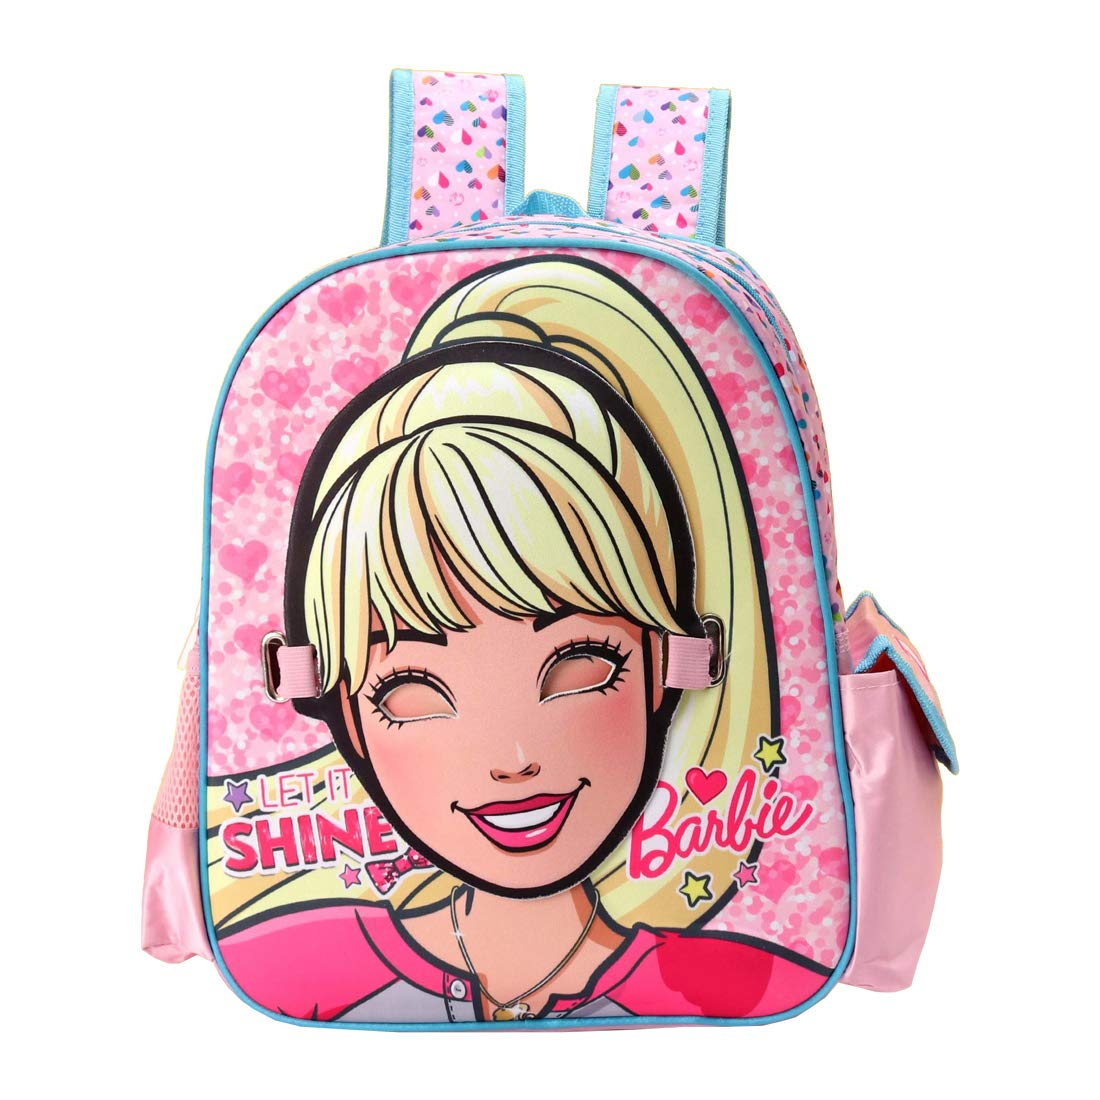 Barbie Polyester 28 cms Multi School Backpack (MBE-MAT564)